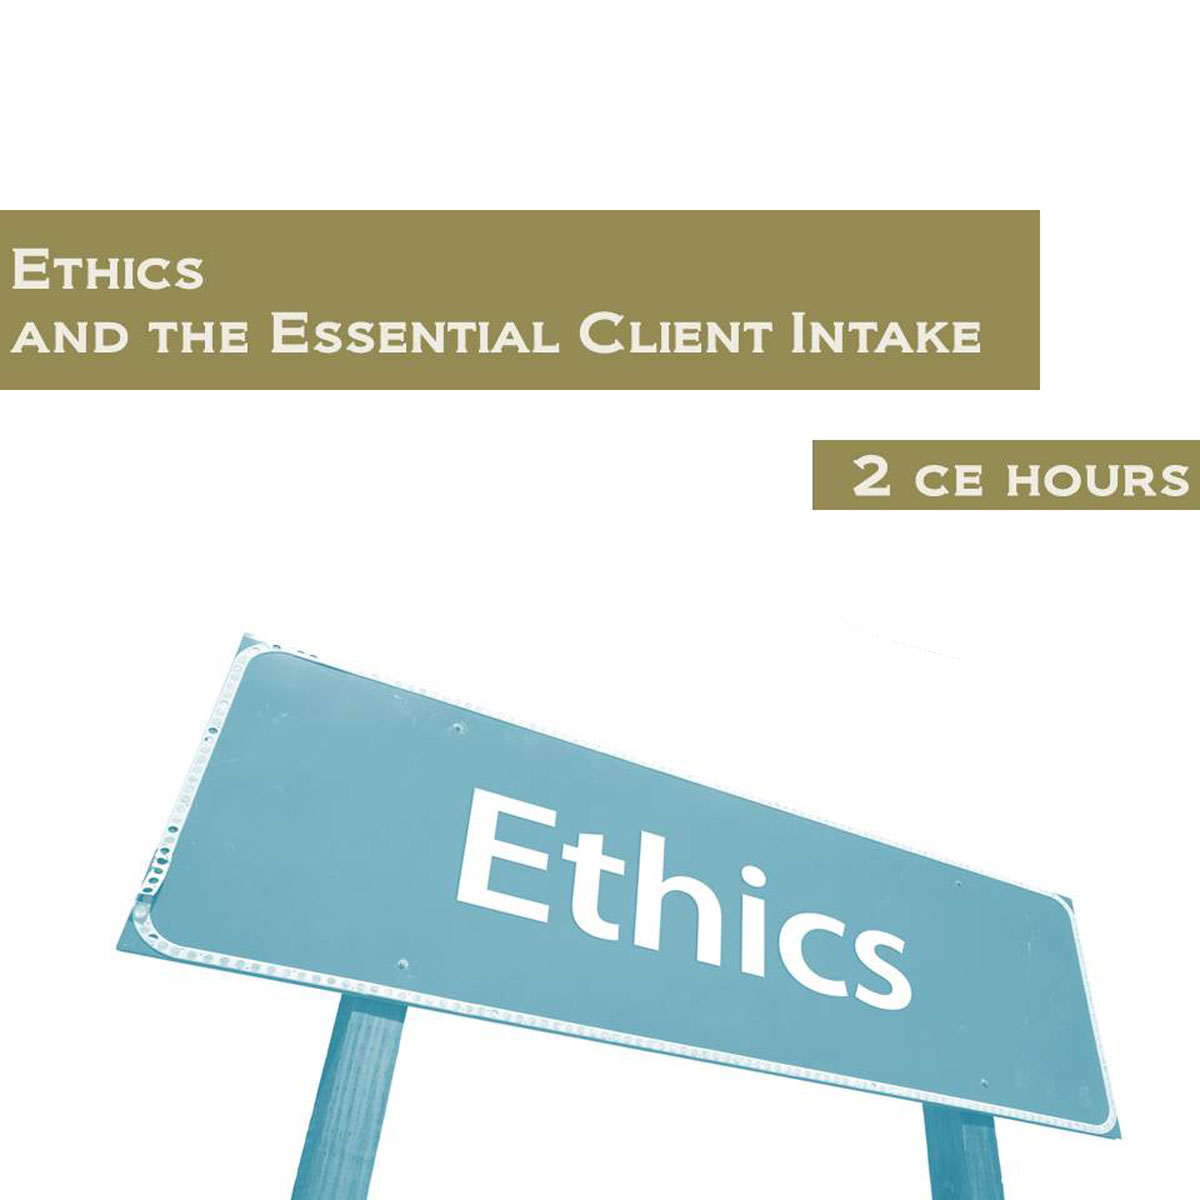 ethical massage This code of ethics is a summary statement of the standards of conduct that define ethical behavior for the massage therapist adherence to the code is a prerequisite for admission to and continued membership in the american massage therapy association (amta.